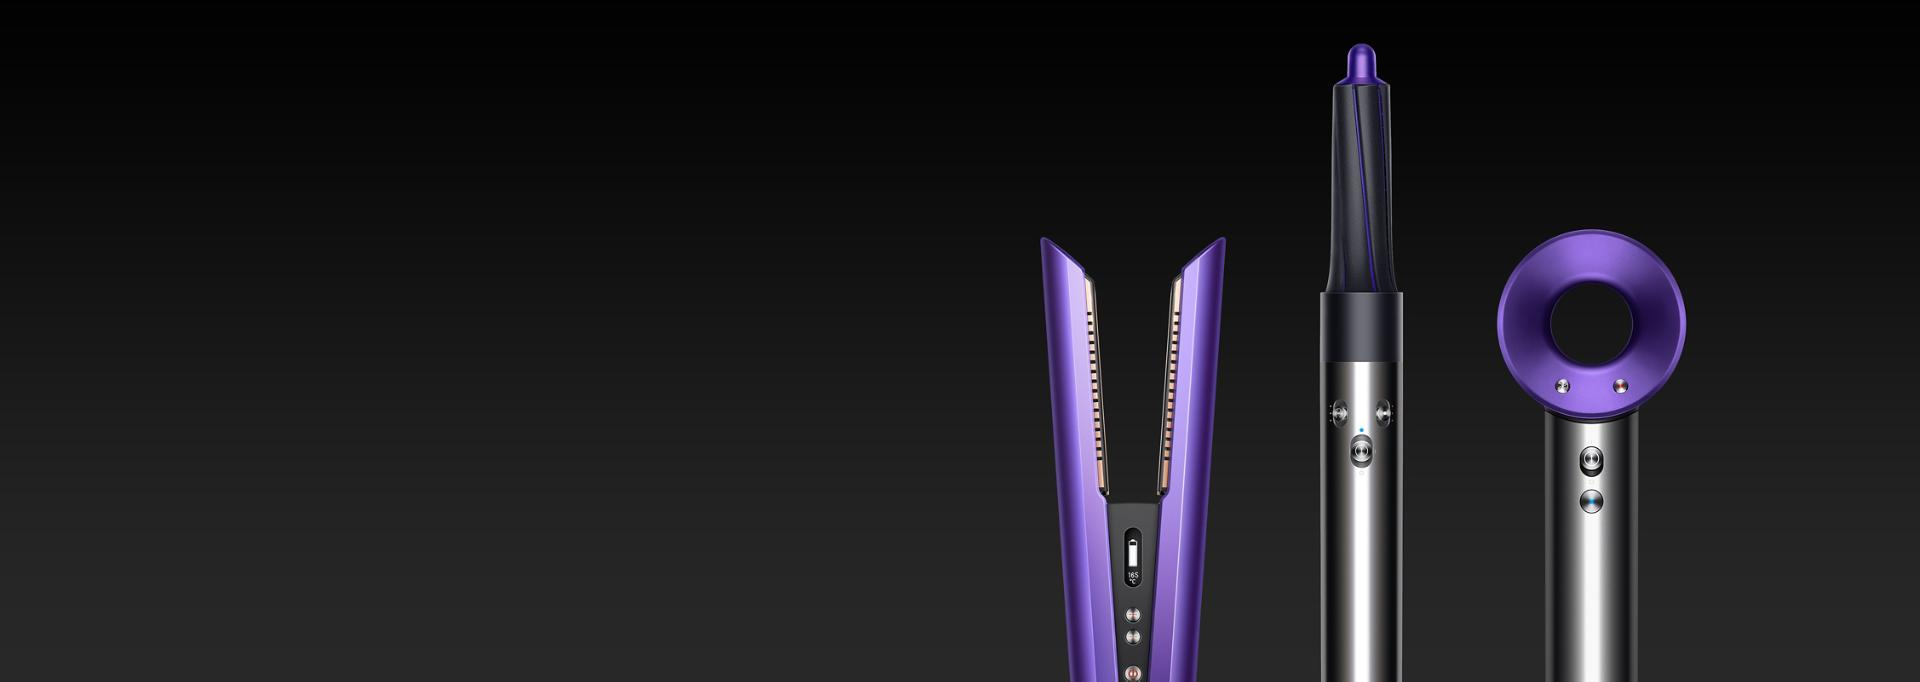 Image of Dyson hair care exclusive colours